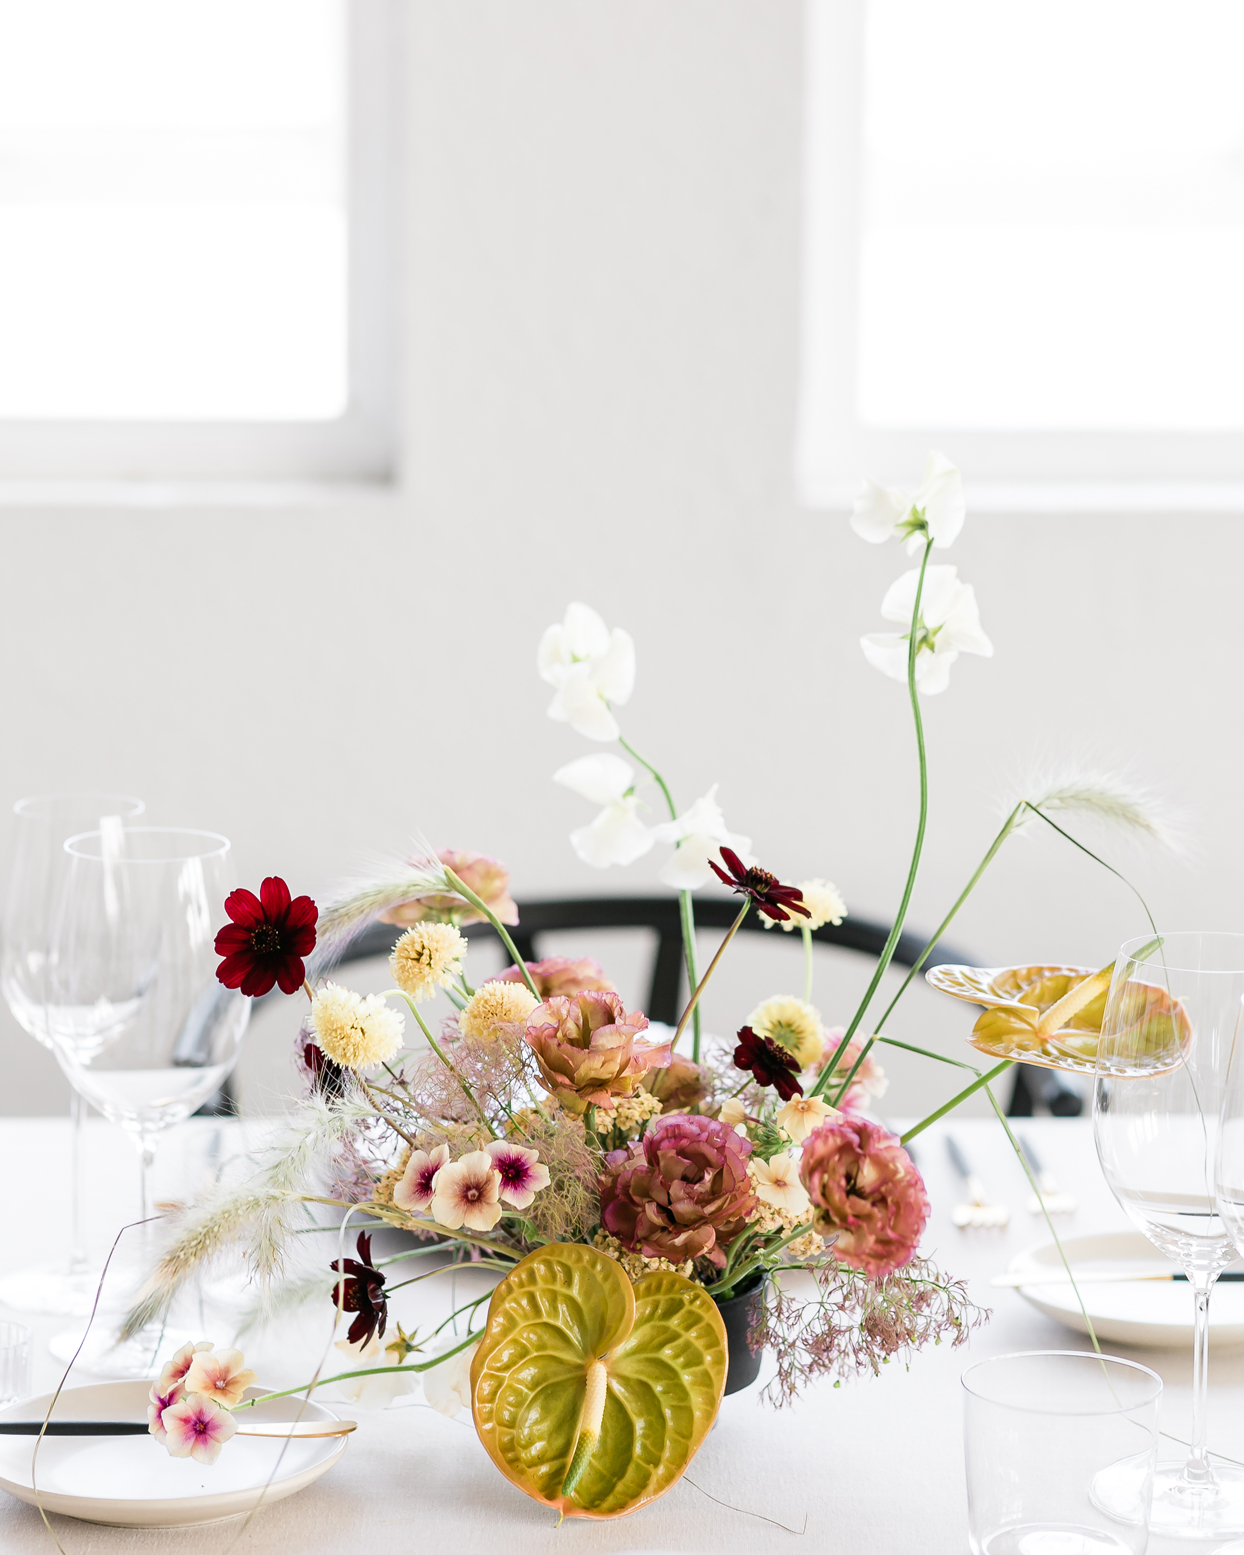 wedding reception centerpiece of greenish-gold anthurium lilies and delicate rich-toned wildflowers